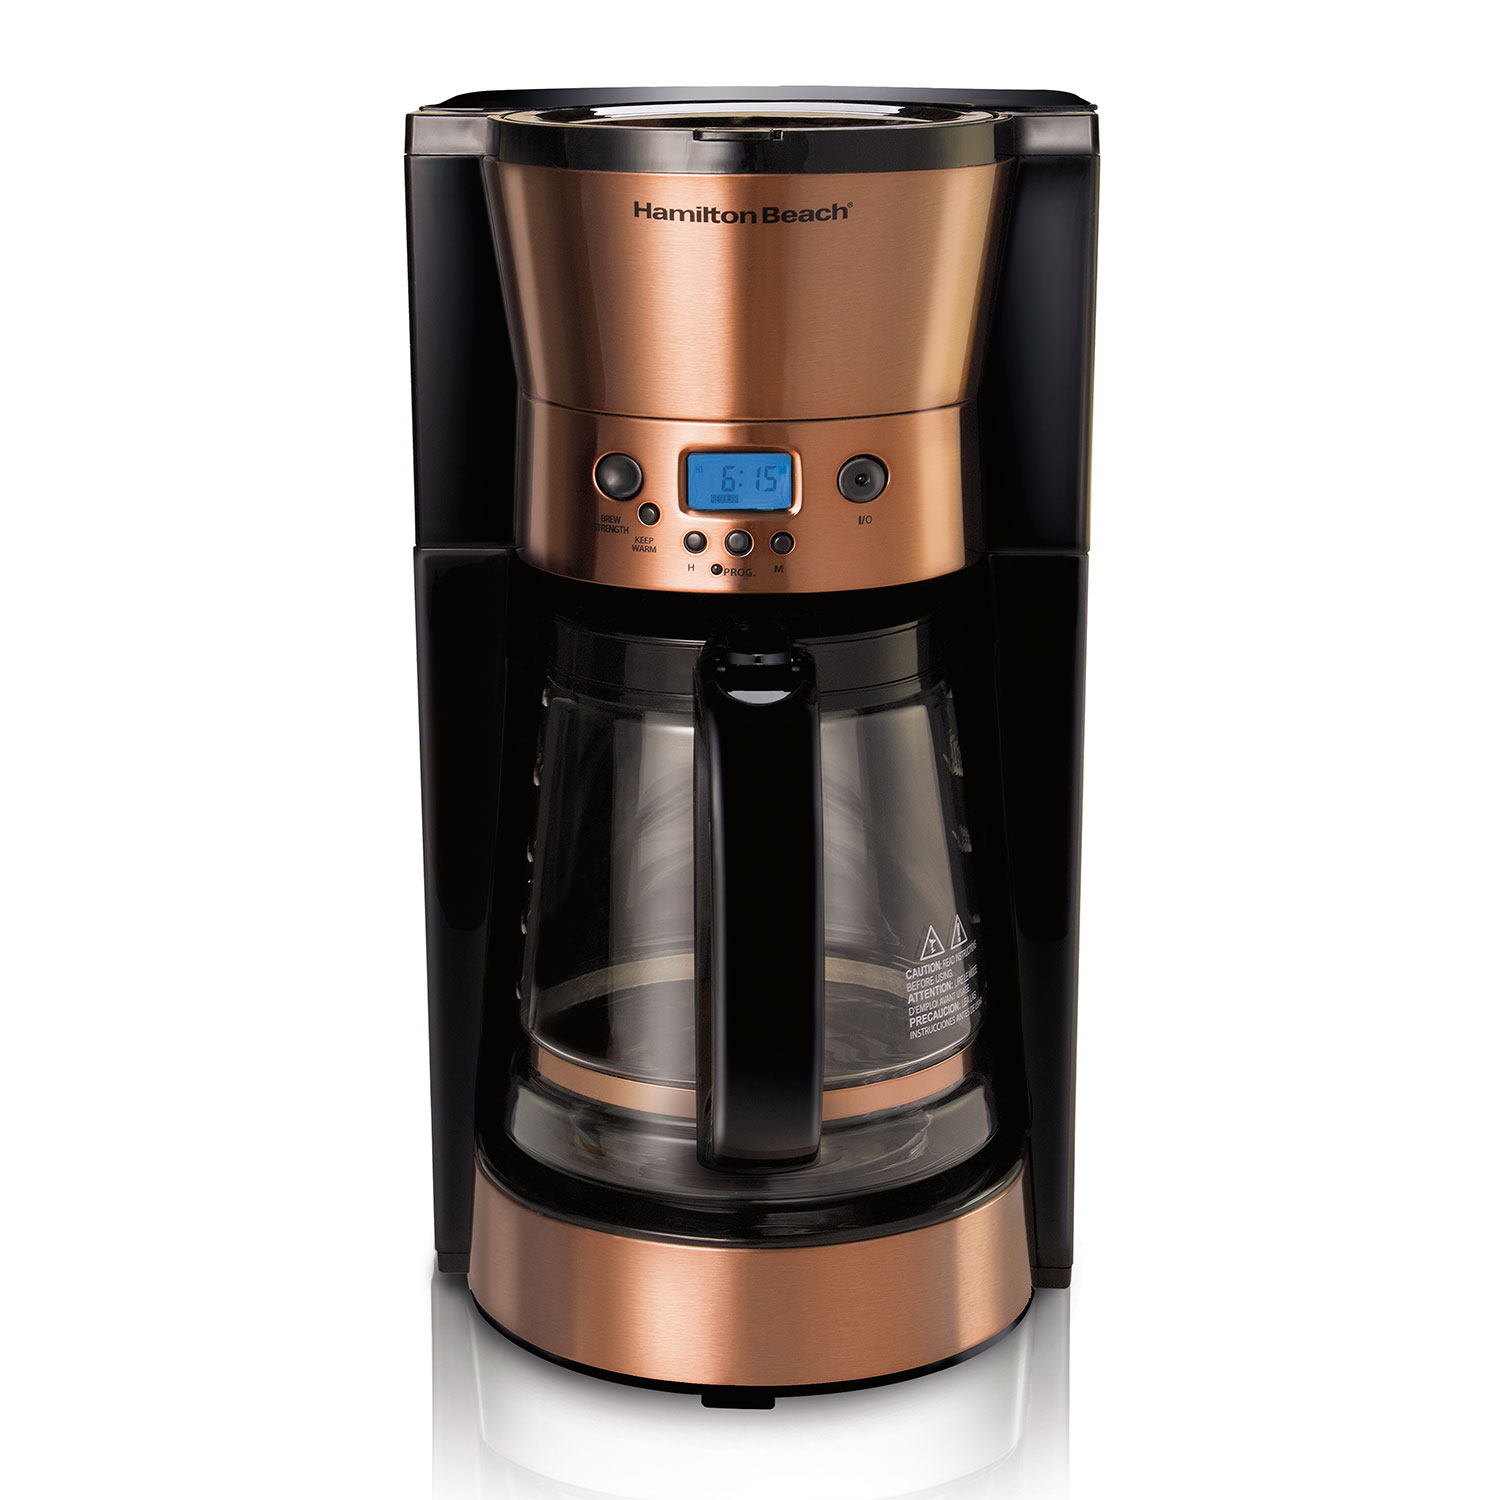 Hamilton Beach 12-Cup Programmable Coffee Maker with Copper Accents - 46898